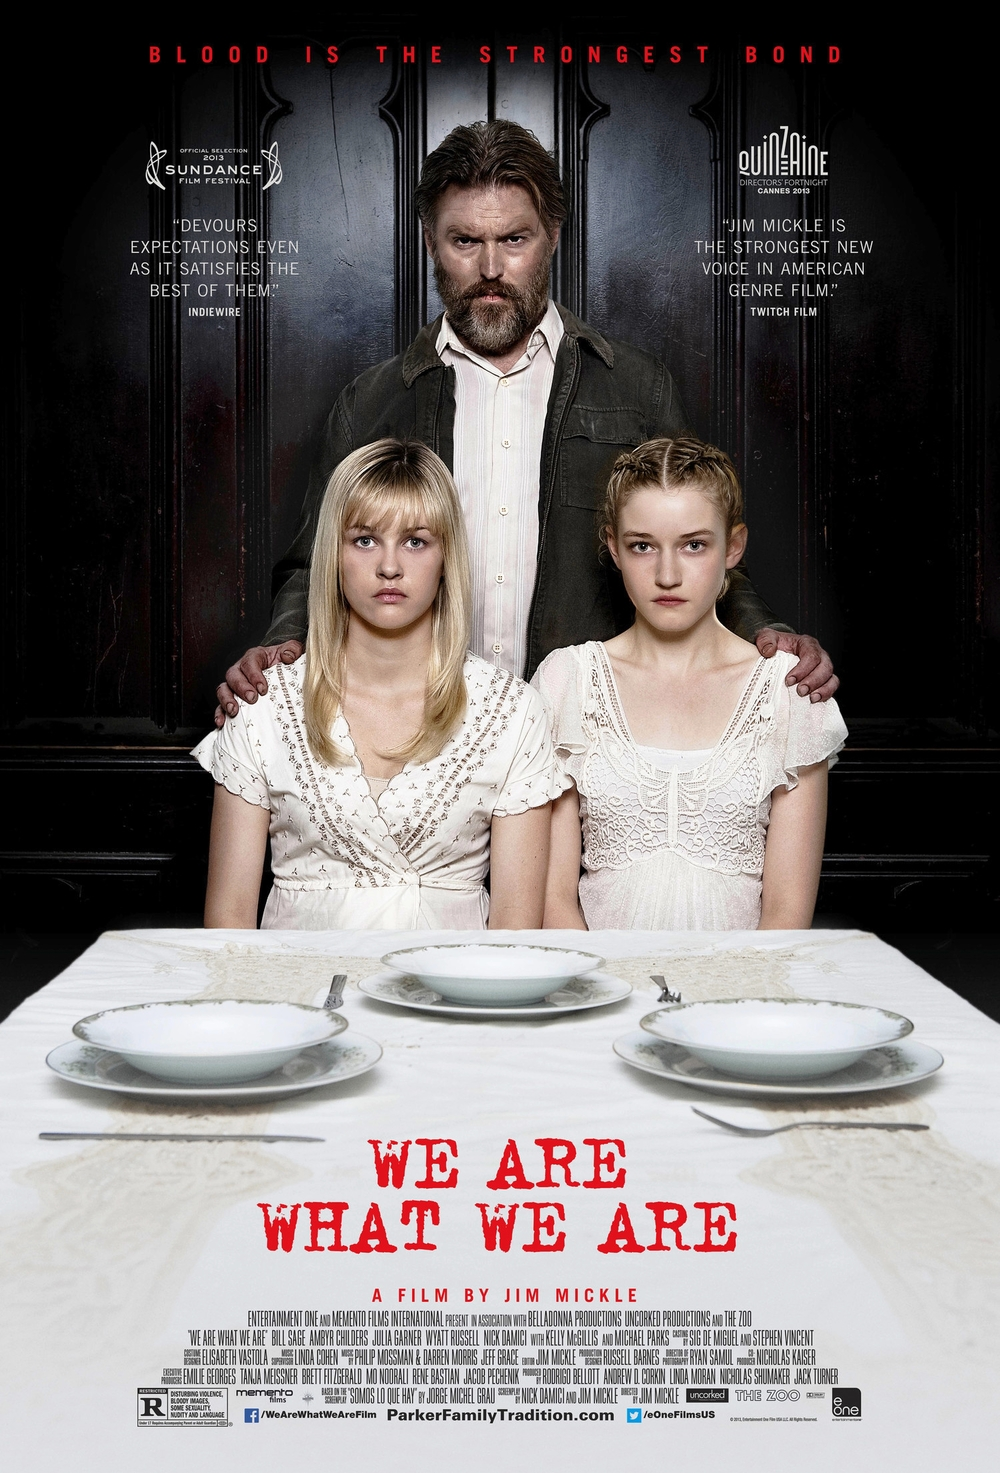 We-Are-What-We-Are-Poster.jpg